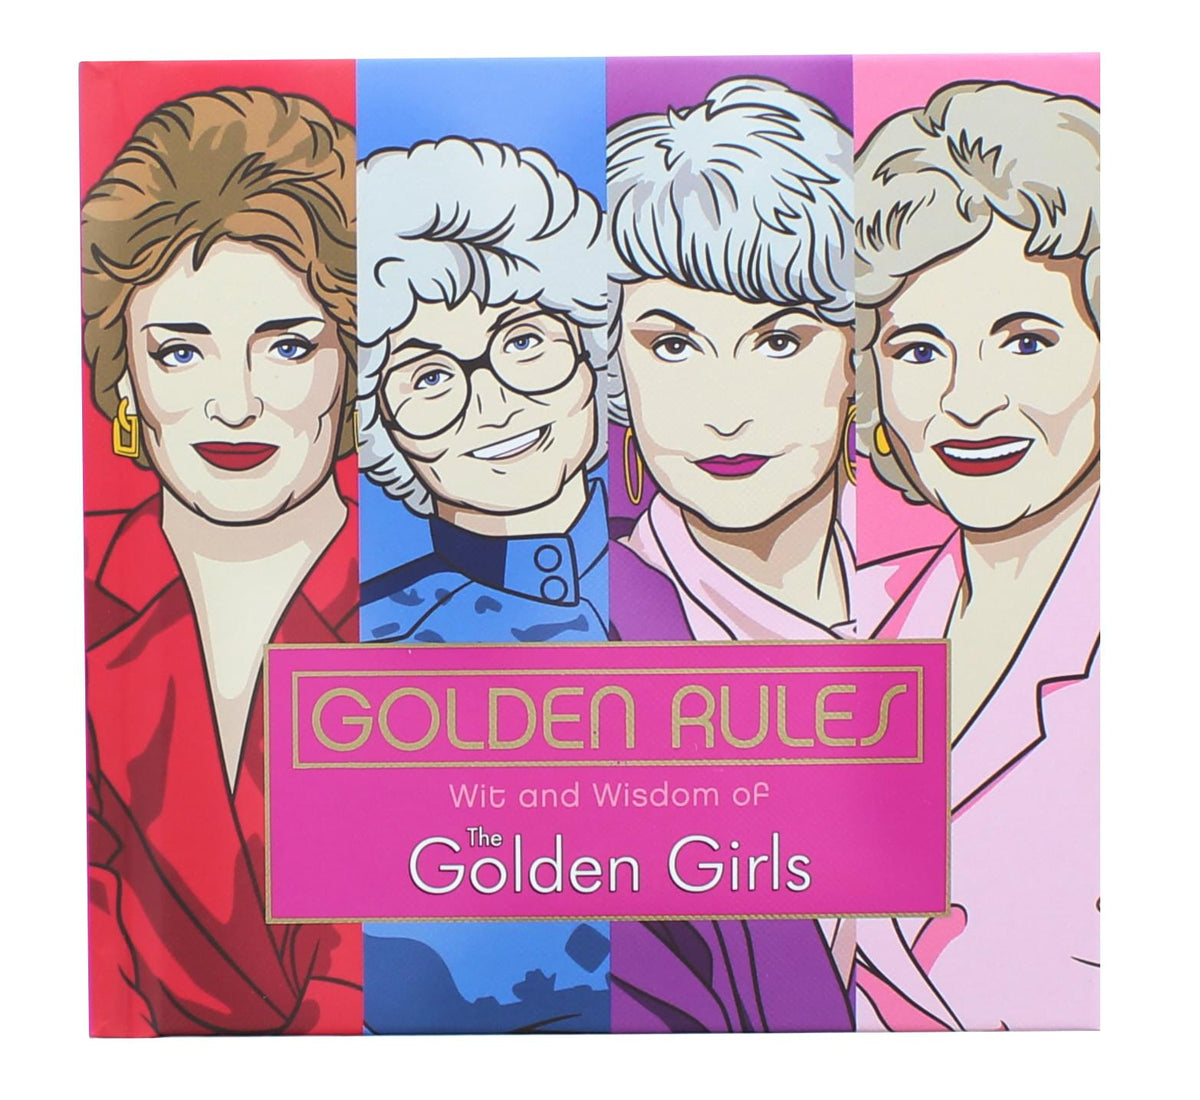 Golden Rules Wit and Wisdom of The Golden Girls Hardcover Book